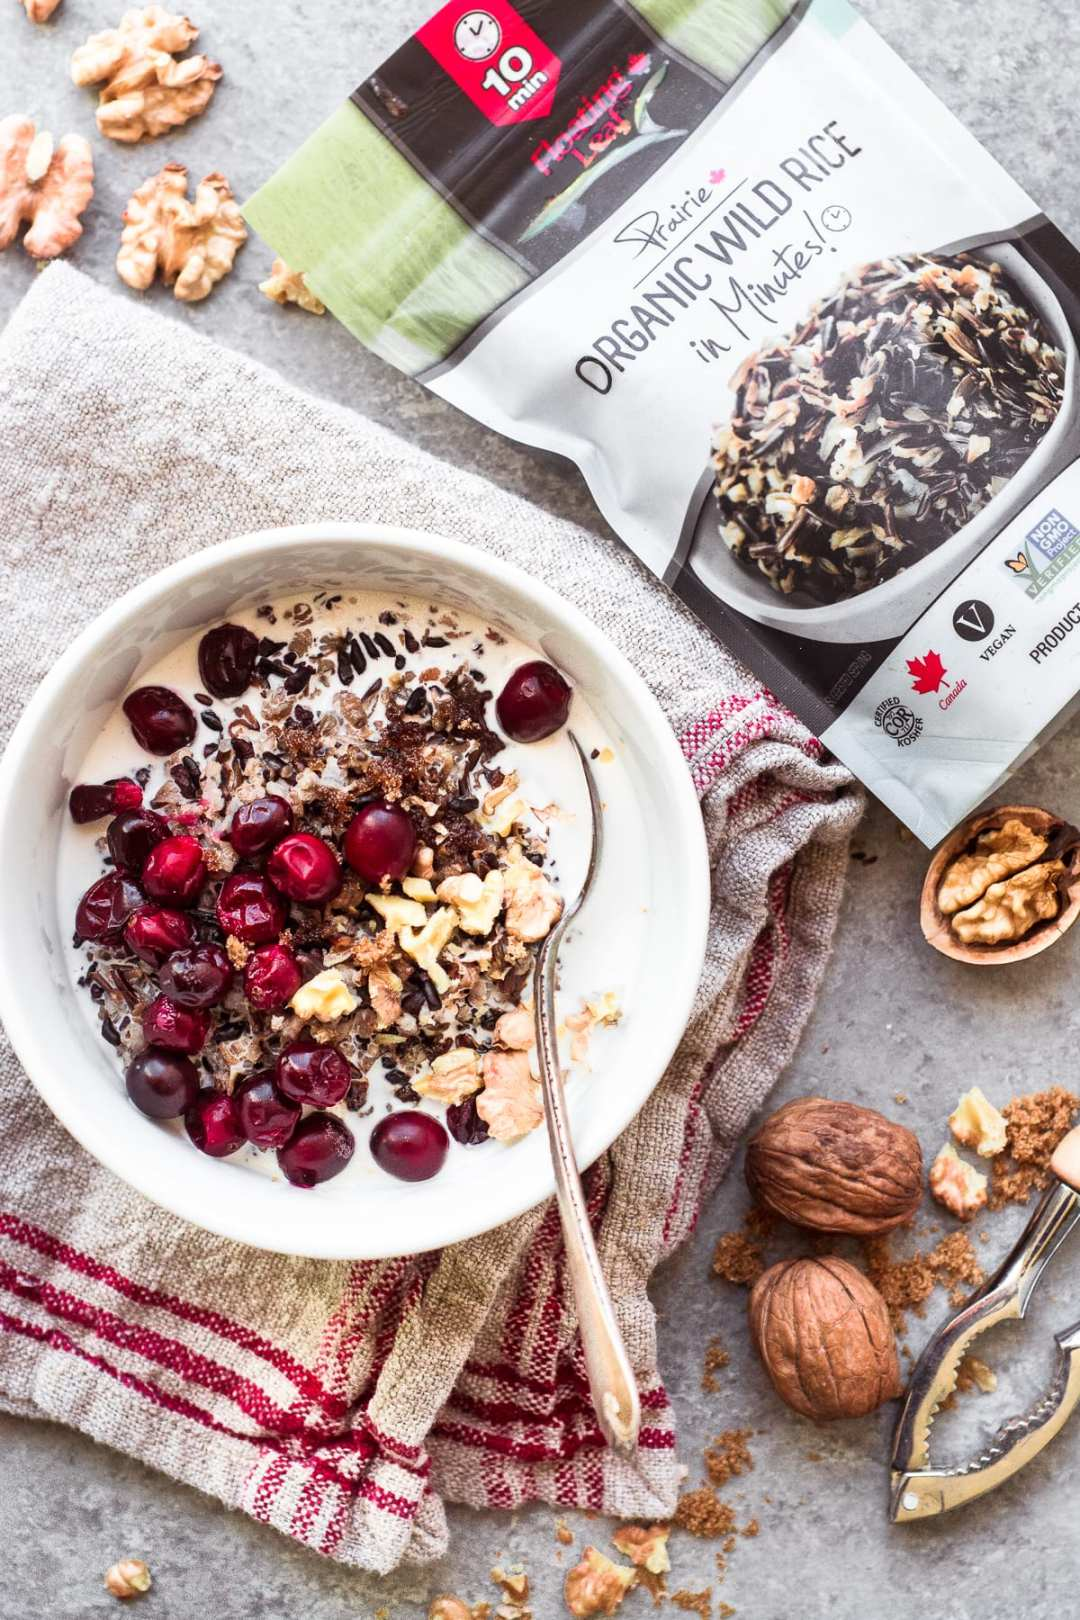 Wild Rice Porridge made with Floating Lead Wild Rice in Minutes